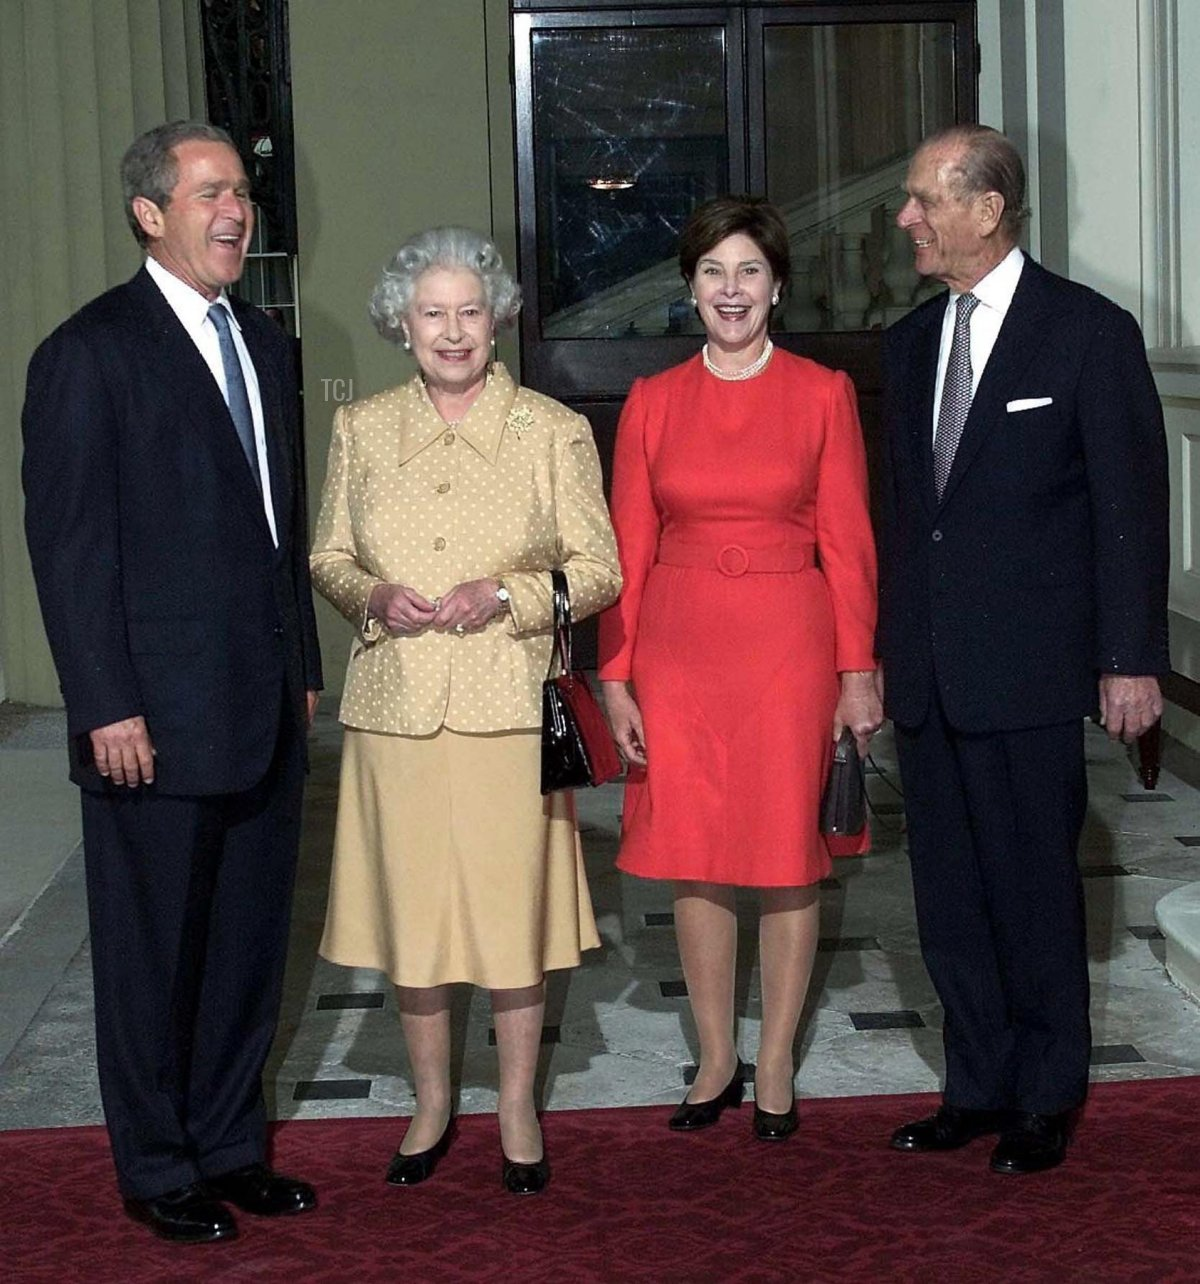 US President Bush (L) is greeted by Britain's Queen Elizabeth II (2ndL) and the Duke of Edinburgh as he arrives out of the rain with his wife, Laura, at Buckingham Palace for lunch, 19 July 2001. US president is on his first visit to the United Kingdom, before travelling on to the G8 summit in Genoa